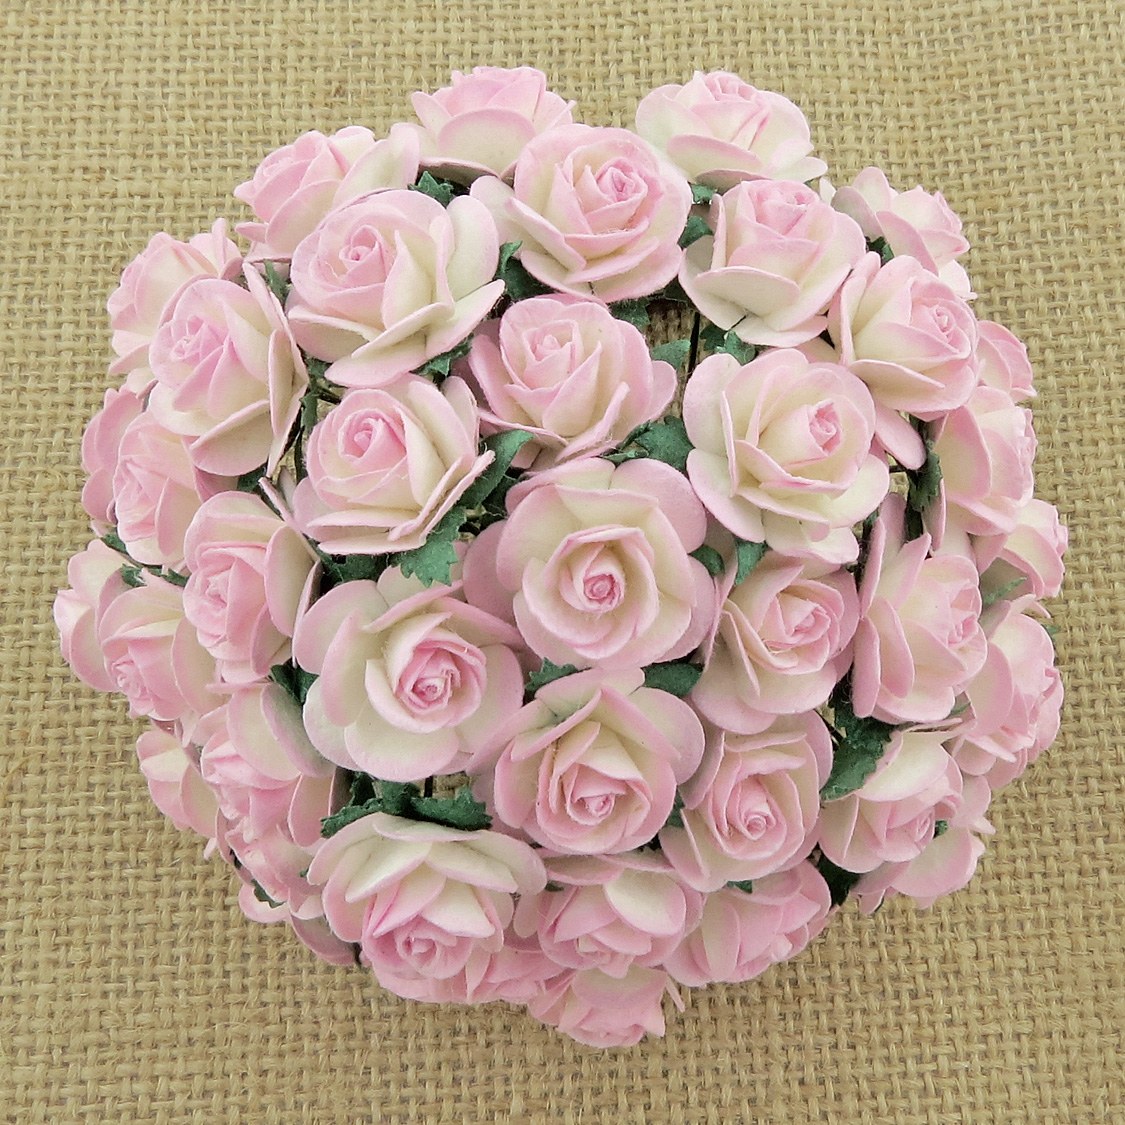 100 2-TONE BABY PINK/IVORY MULBERRY PAPER OPEN ROSES